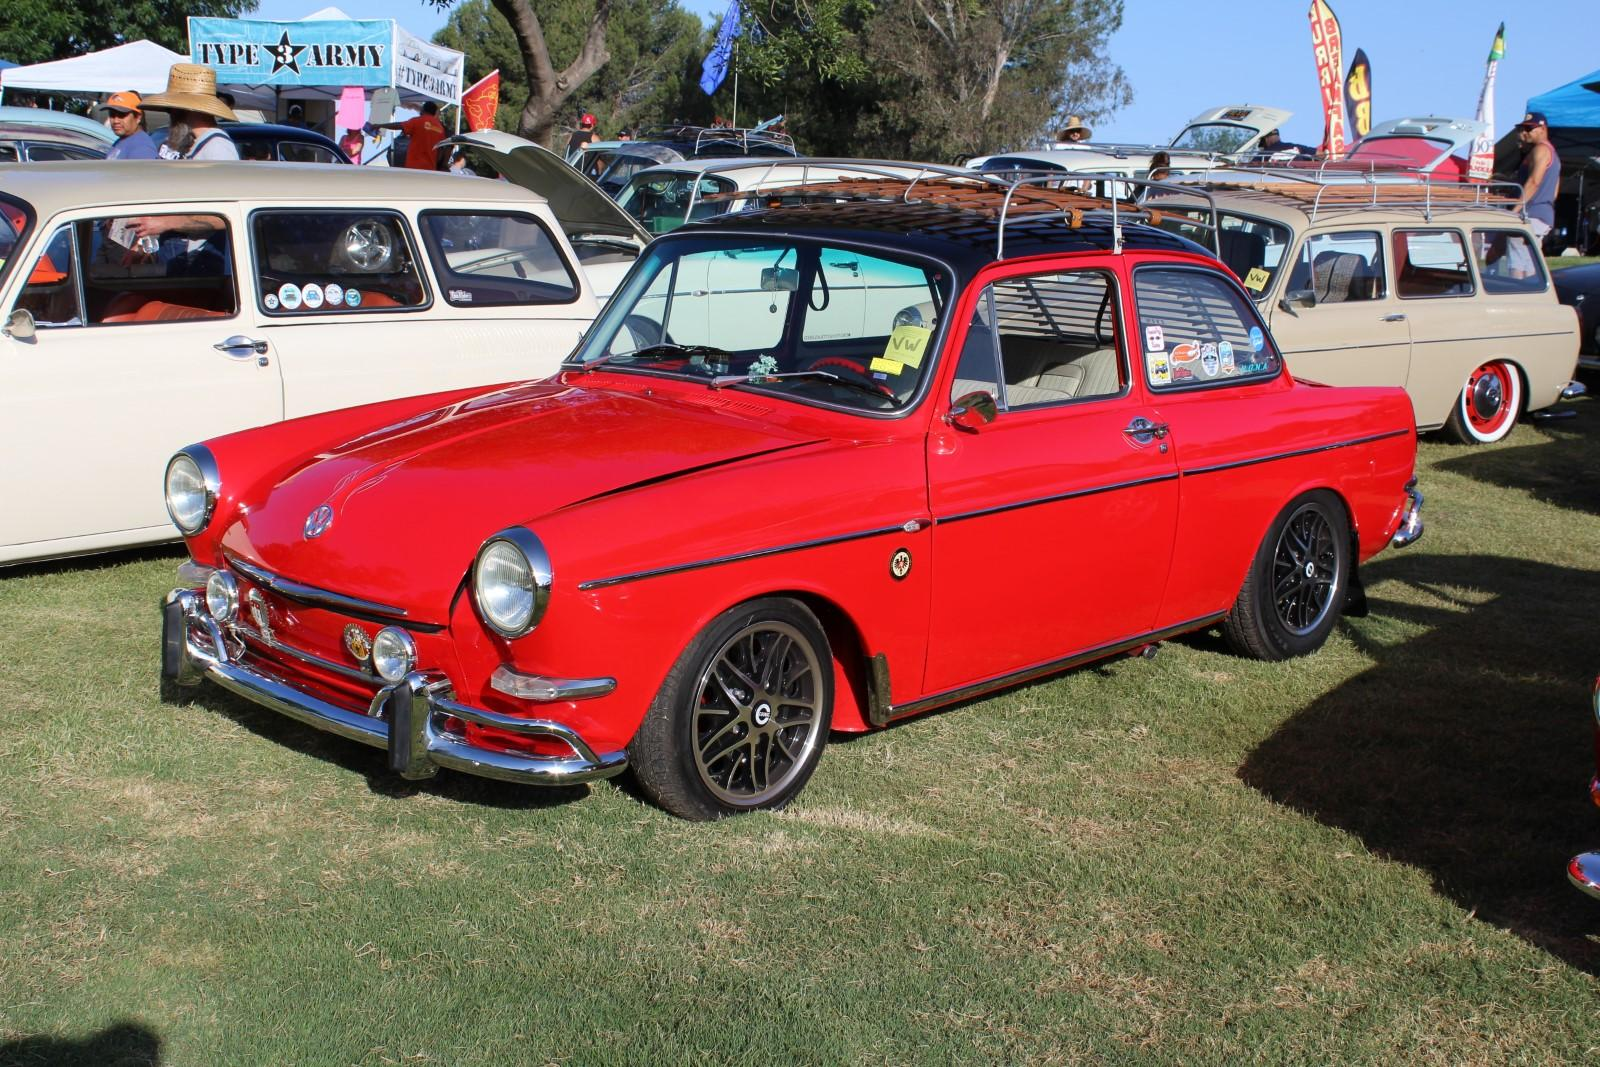 Red Notchback with Black roof